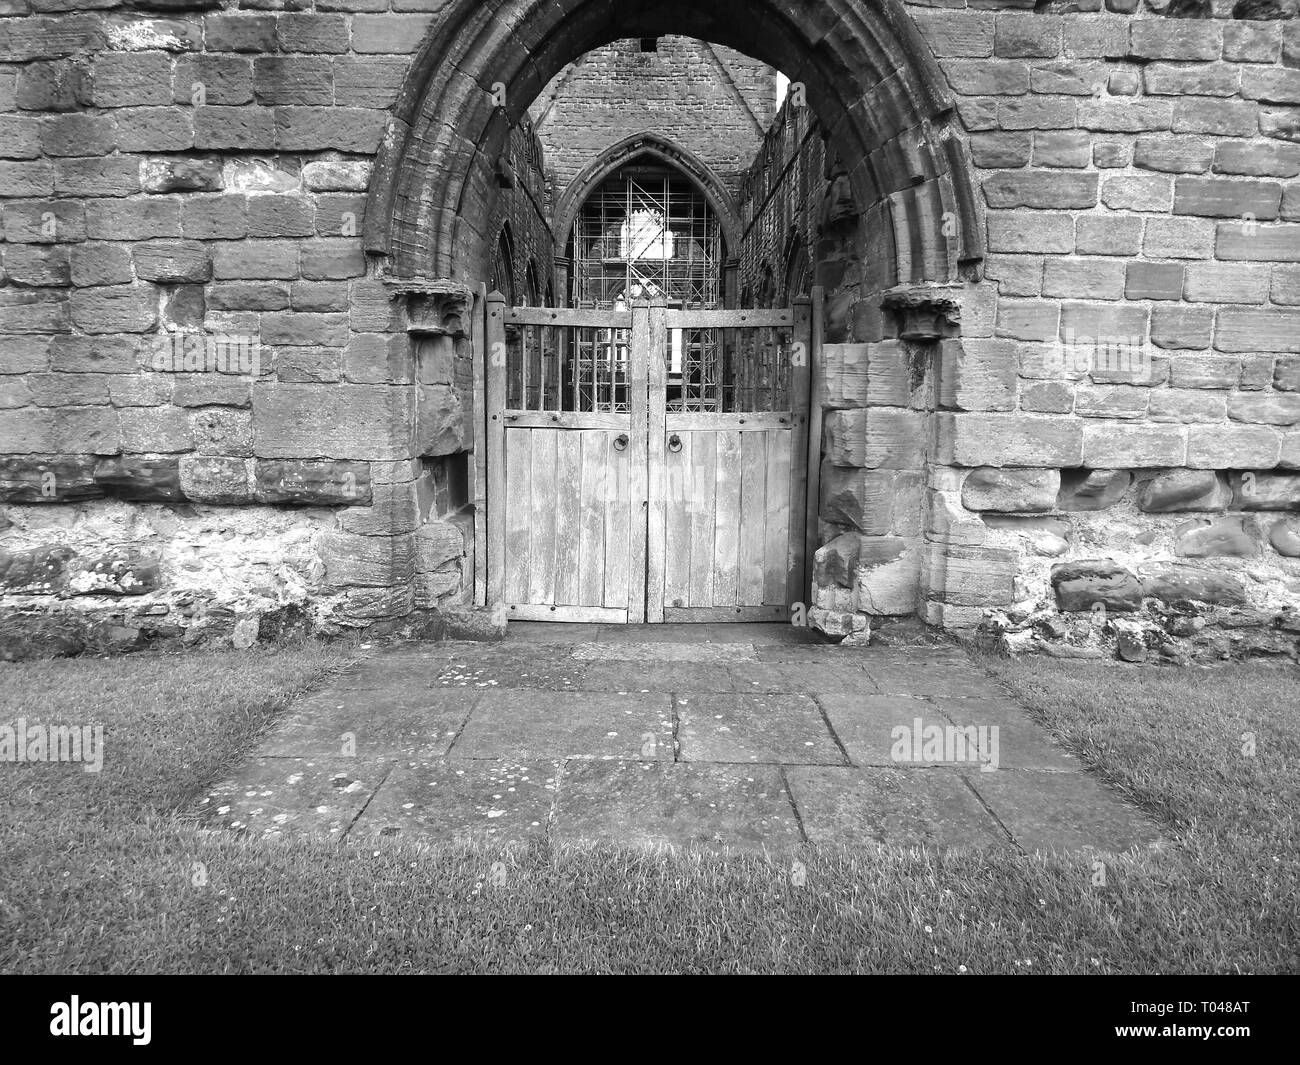 Balck and White Archway at Sweetheart Abbey - Stock Image